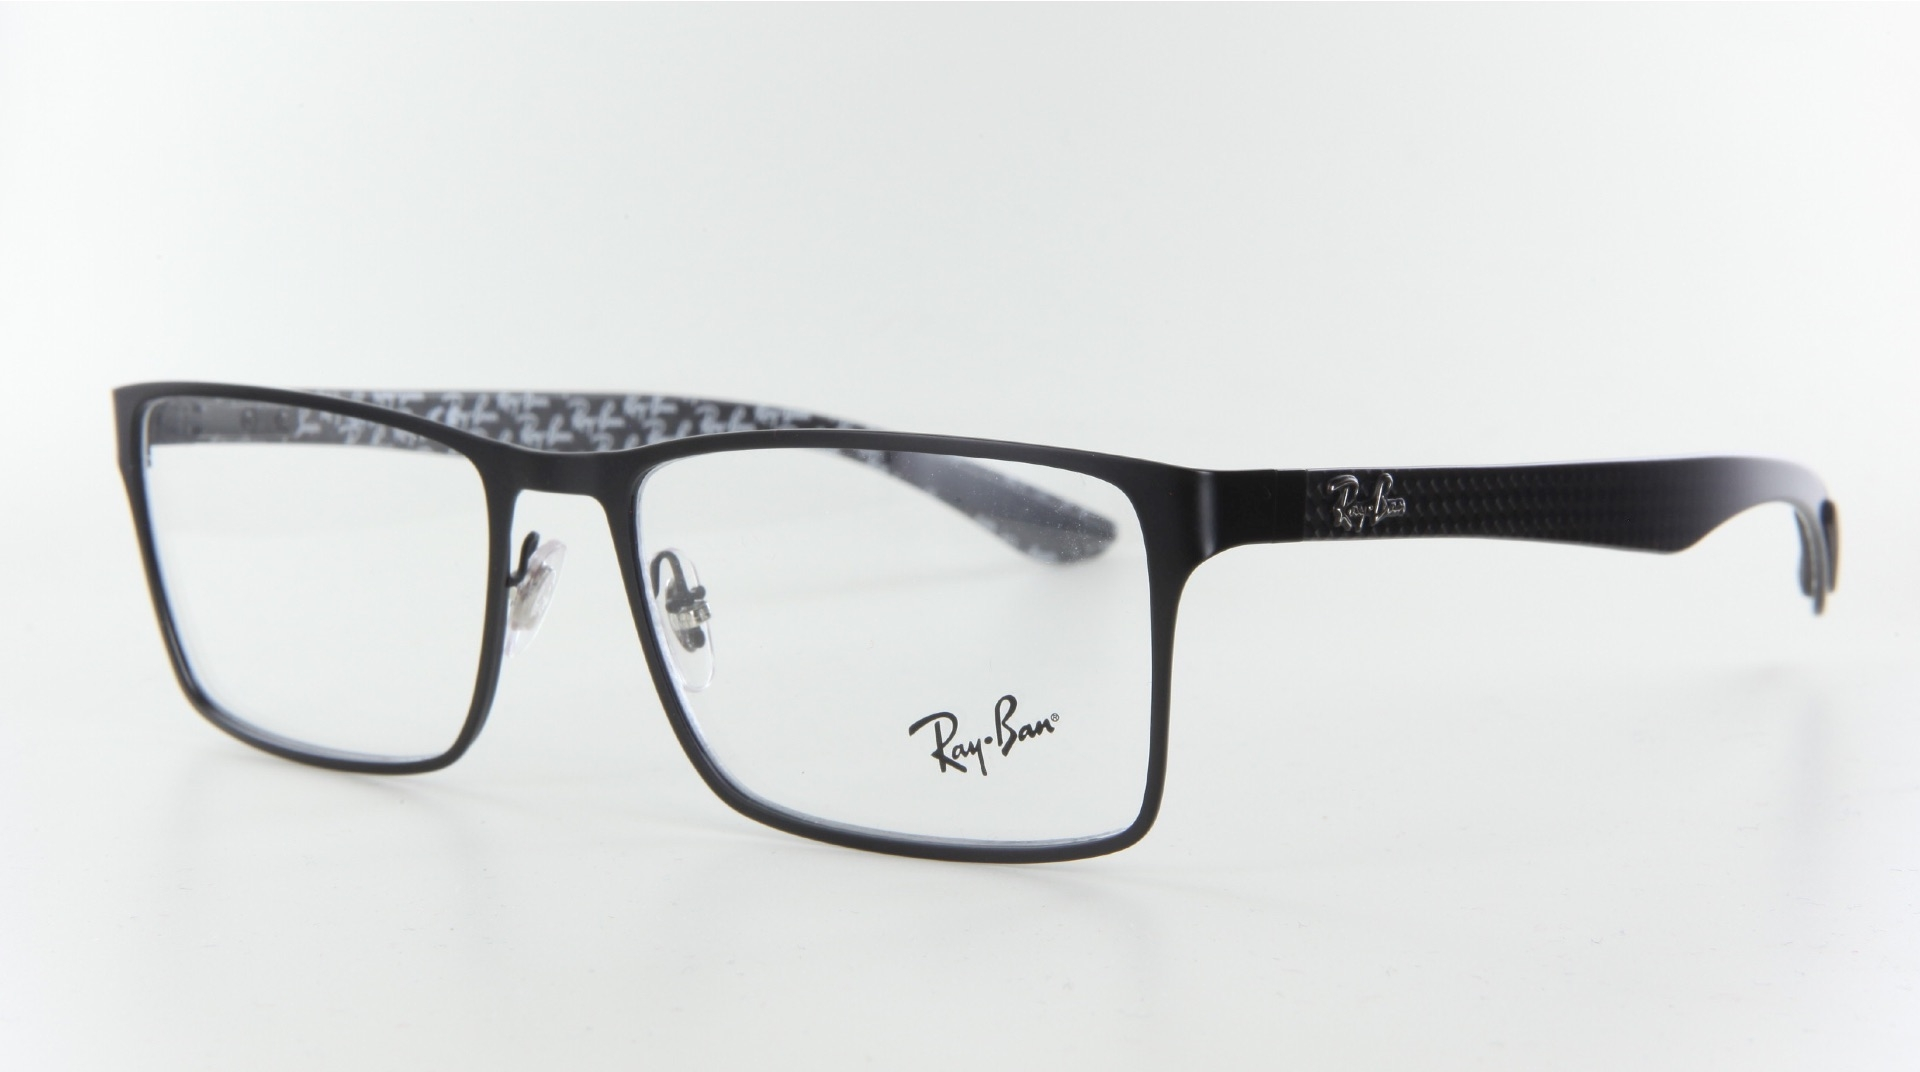 Ray-Ban - ref: 72937